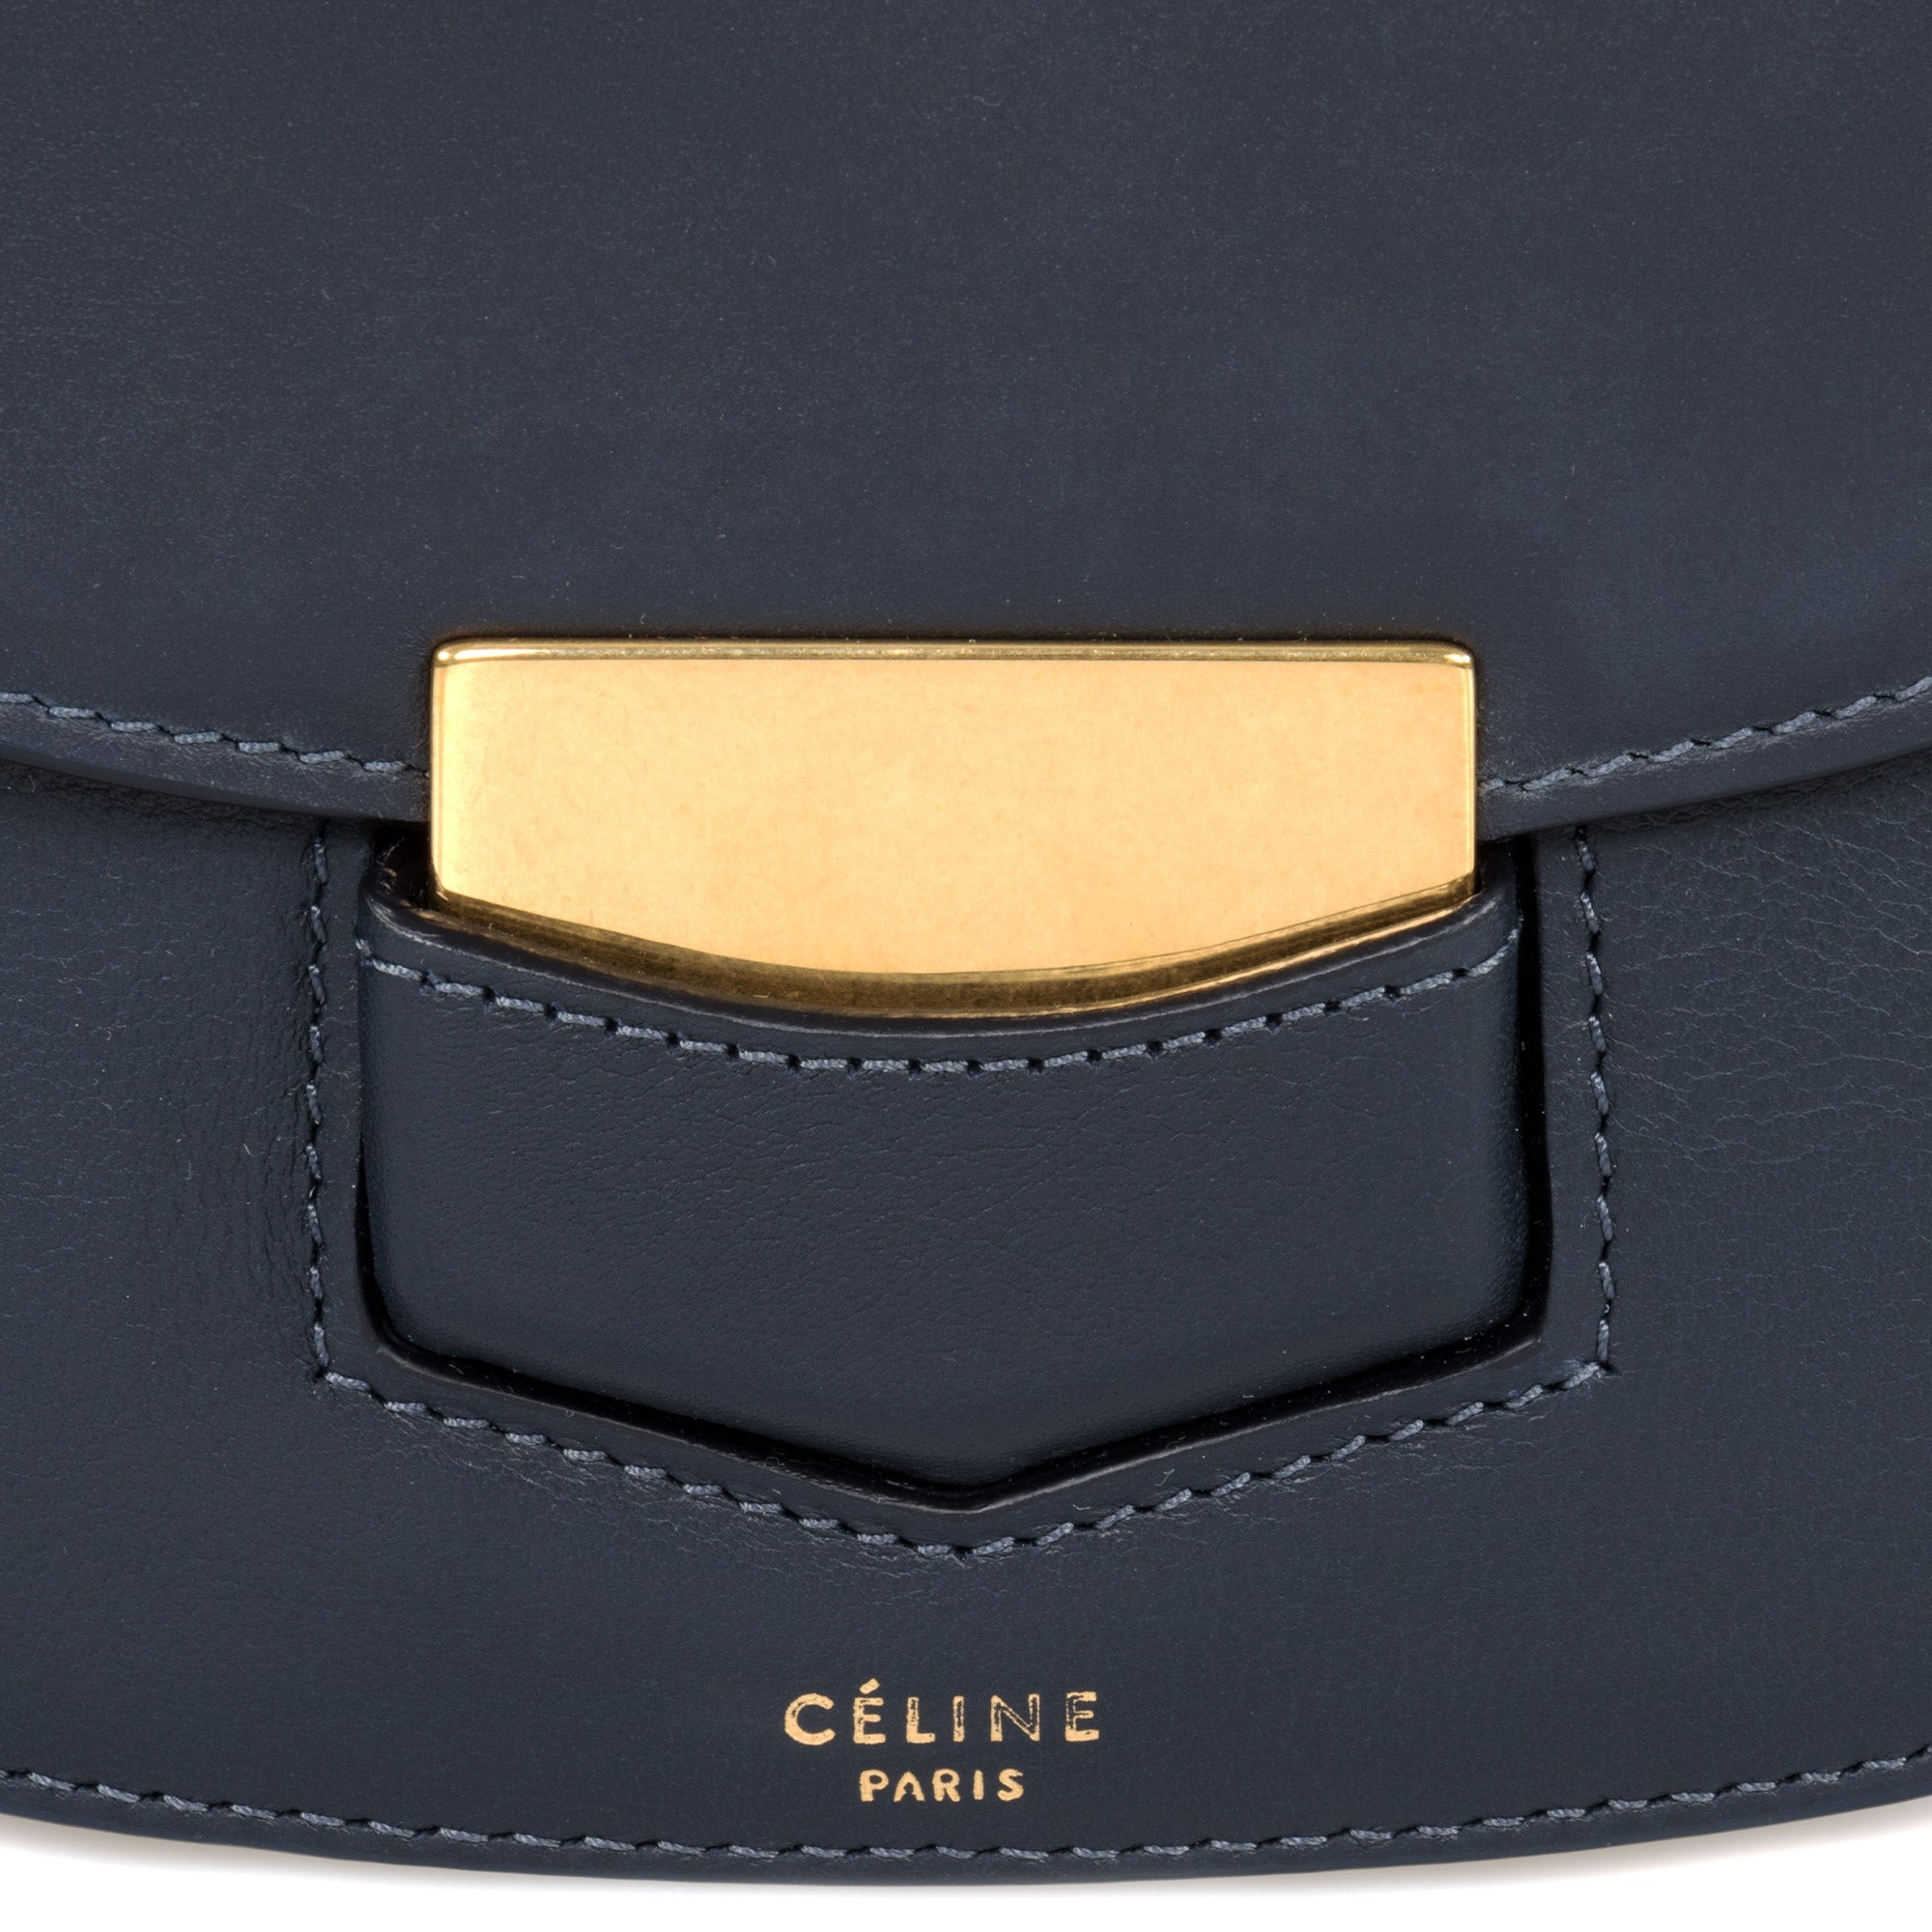 43b922c68 Shop Celine Trotteur Small Navy Blue Leather Crossbody Handbag - Free  Shipping Today - Overstock - 23085452